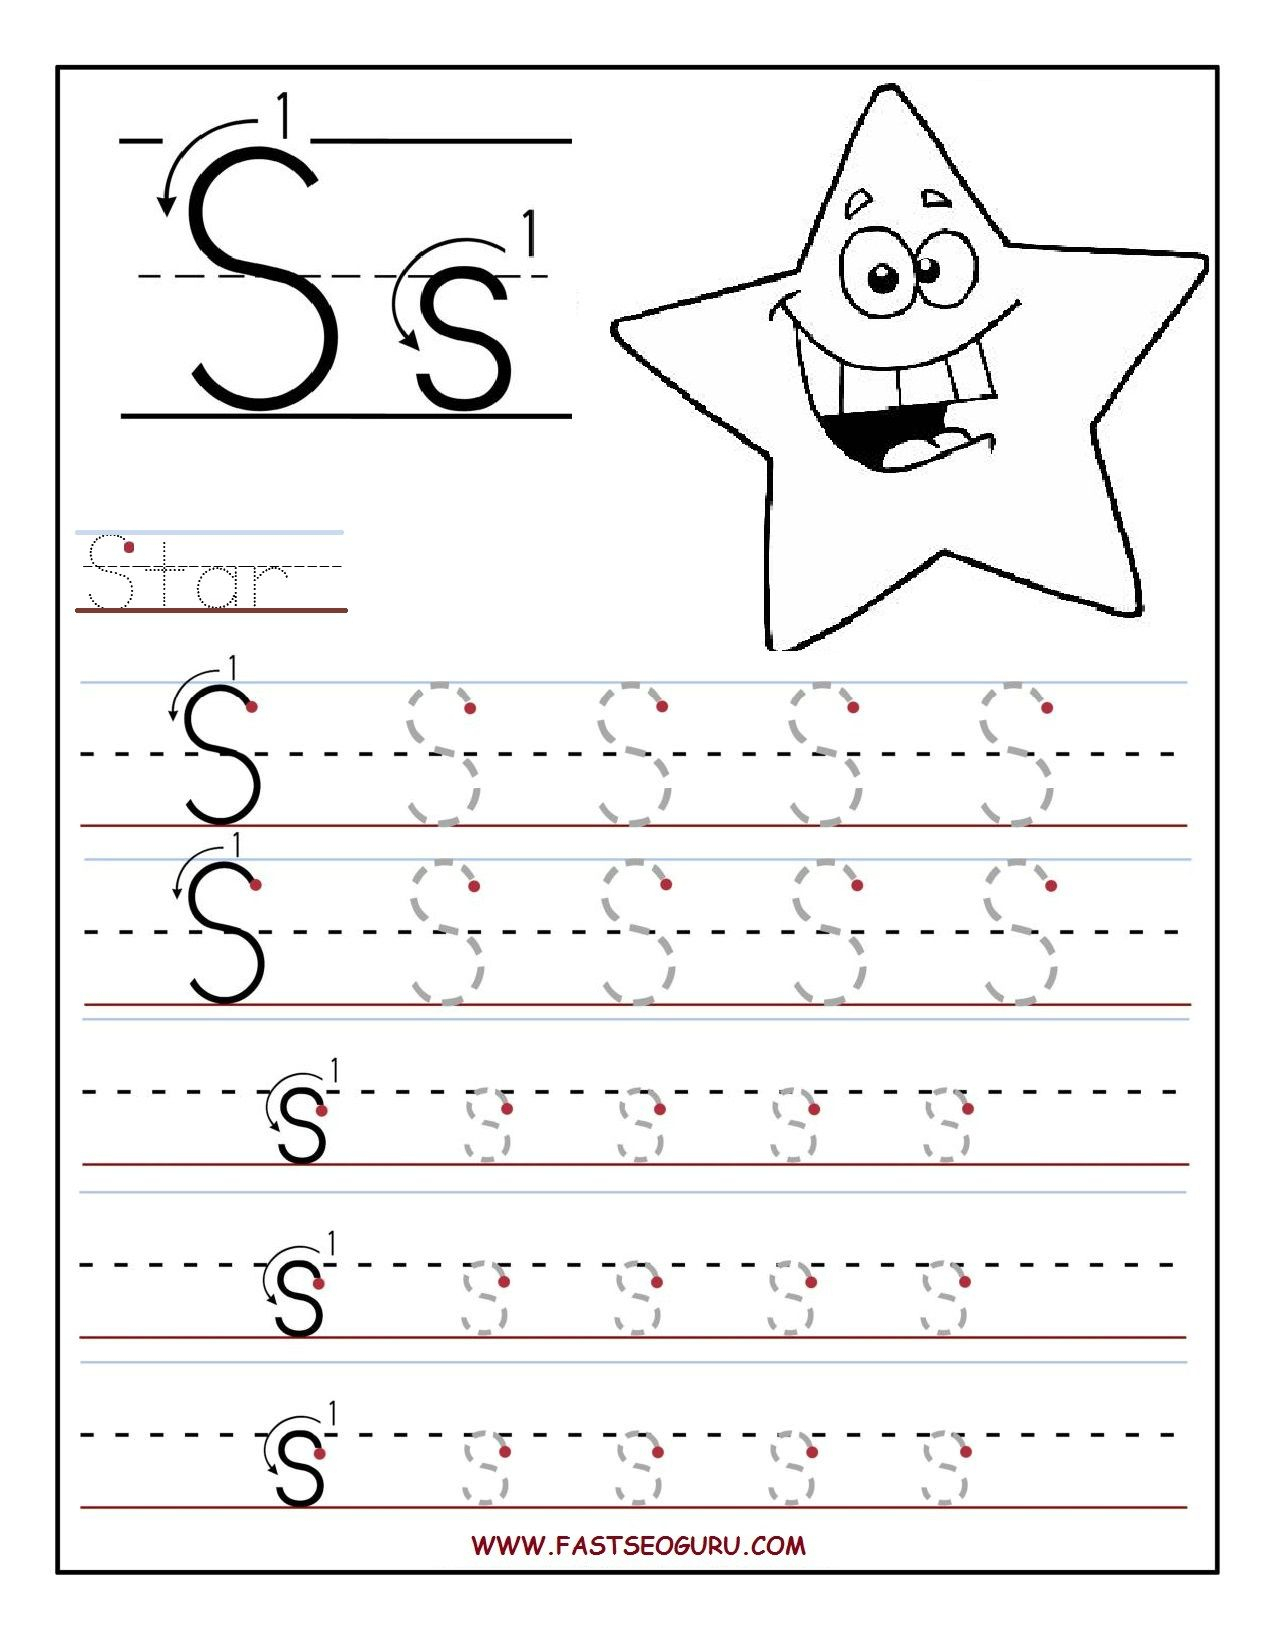 Preschool Tracing Letters Free Worksheets